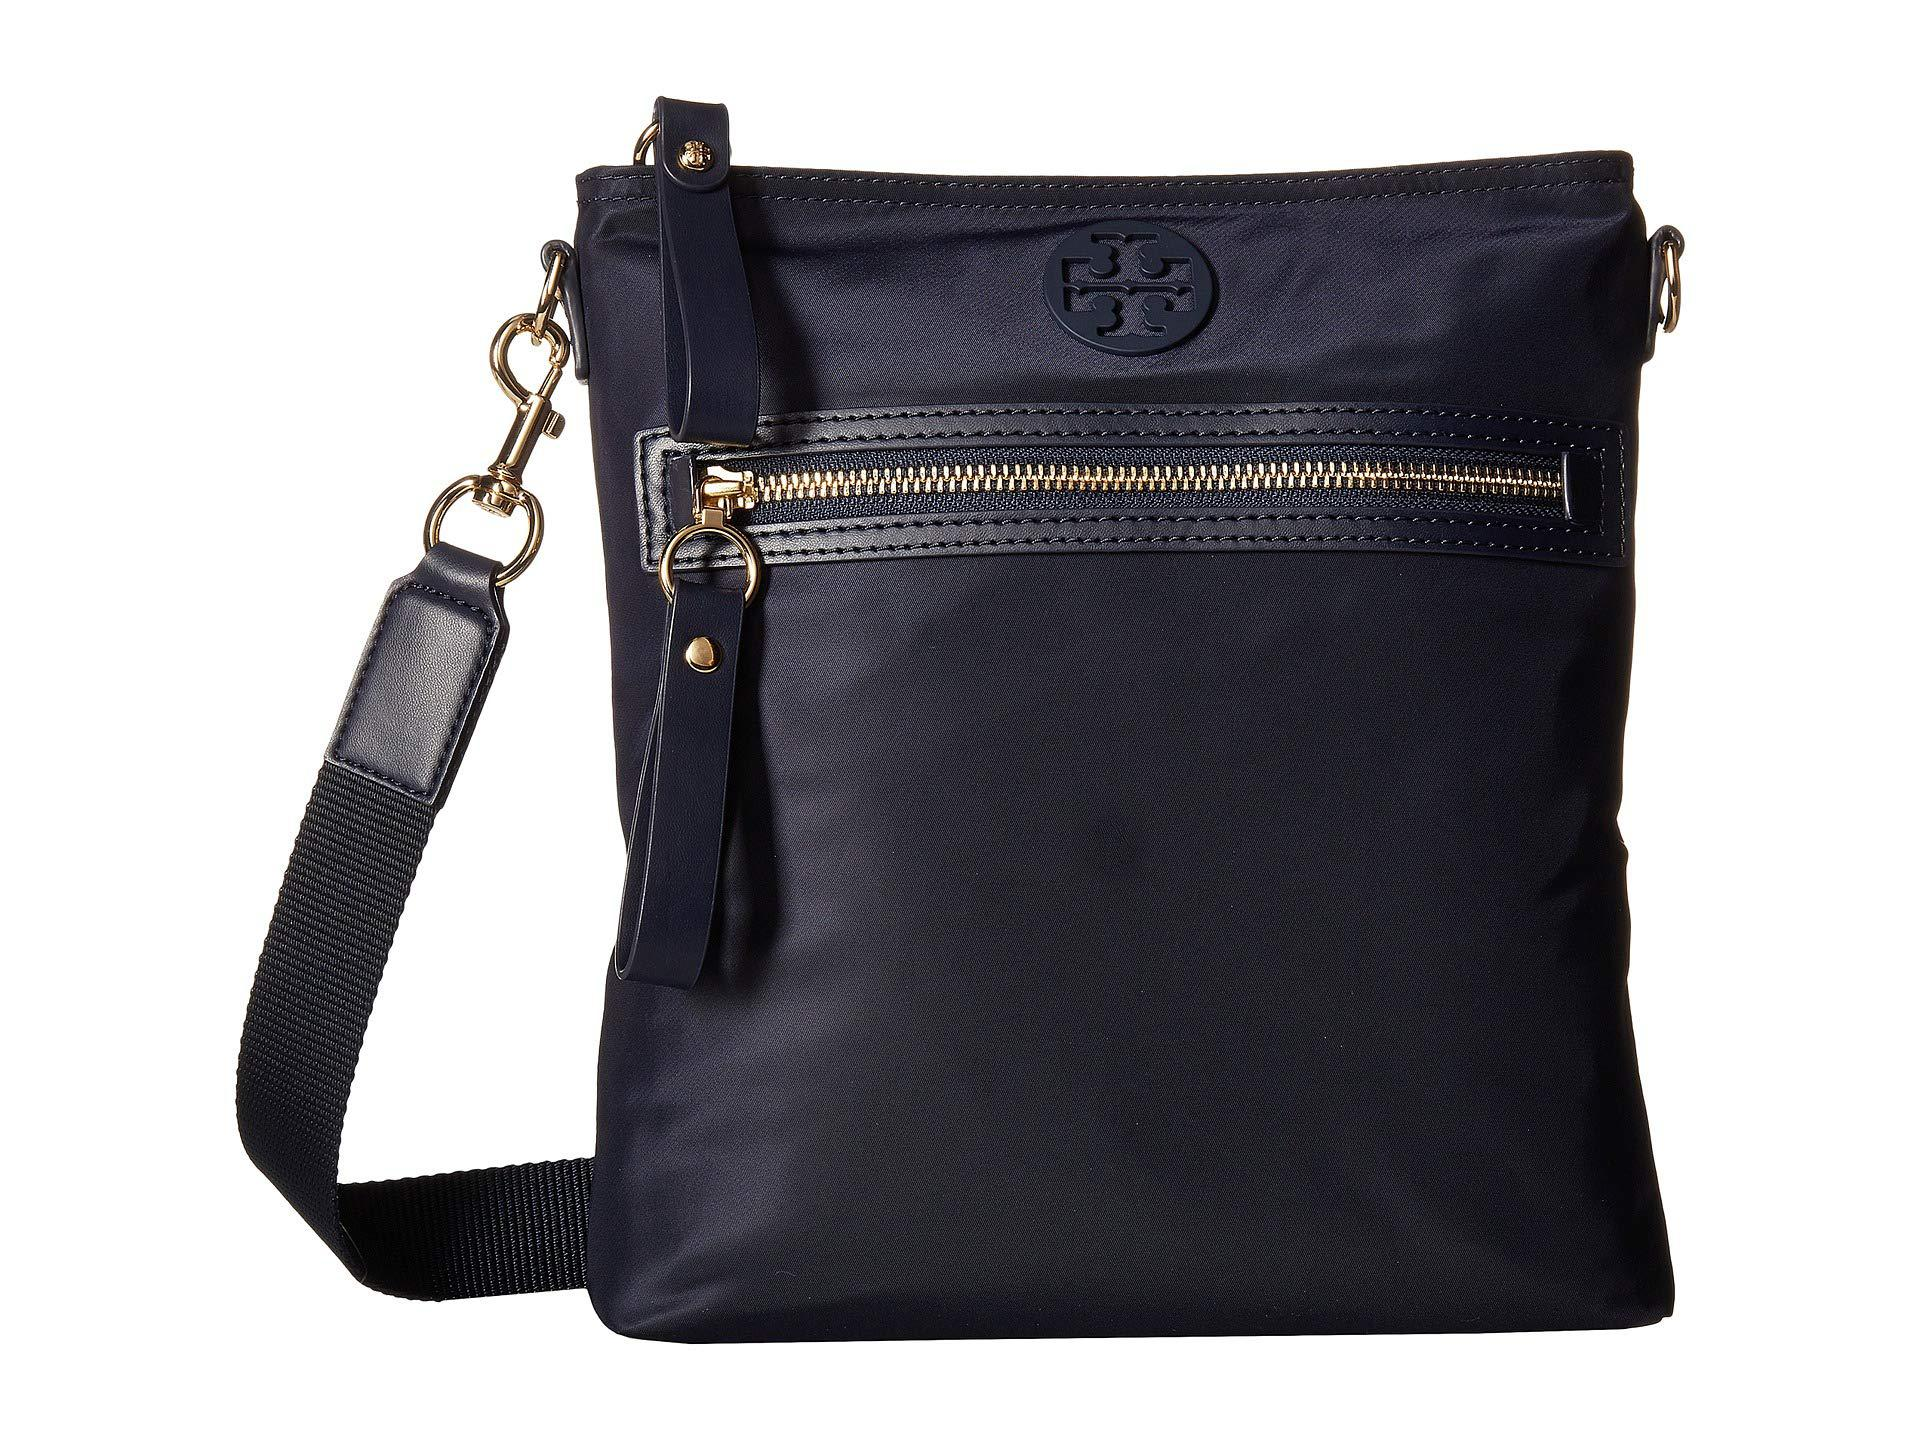 69fe0fe85b8 Lyst - Tory Burch Tilda Swingpack (black) Cross Body Handbags in Blue